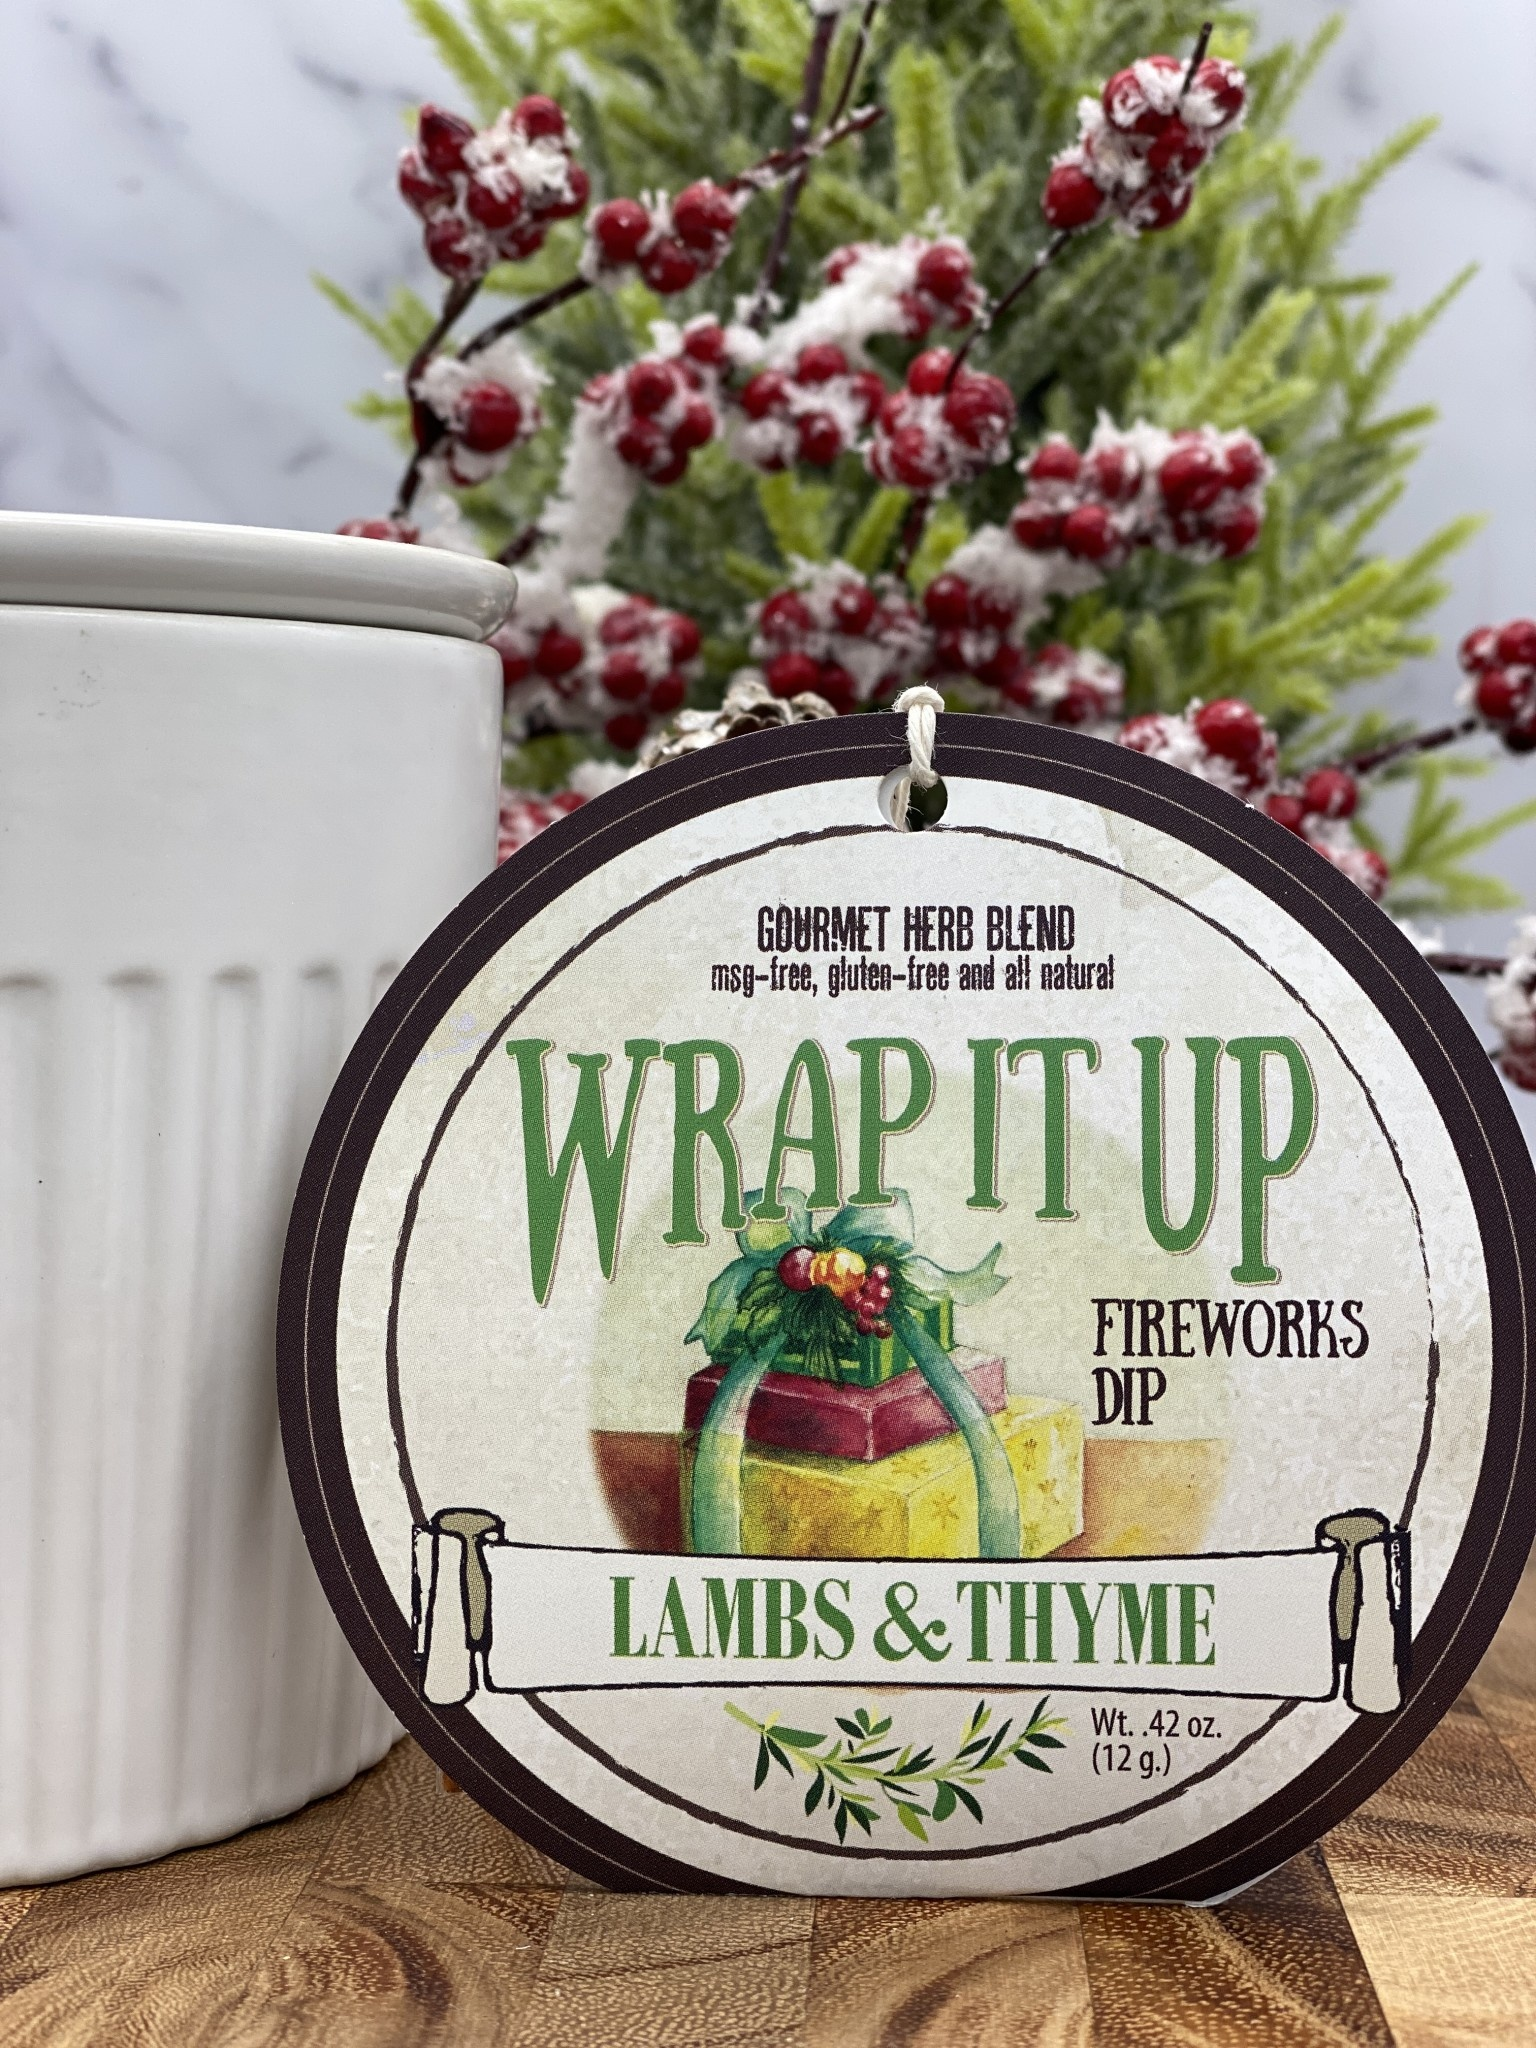 Lambs & Thyme Holiday Dips Wrap It Up